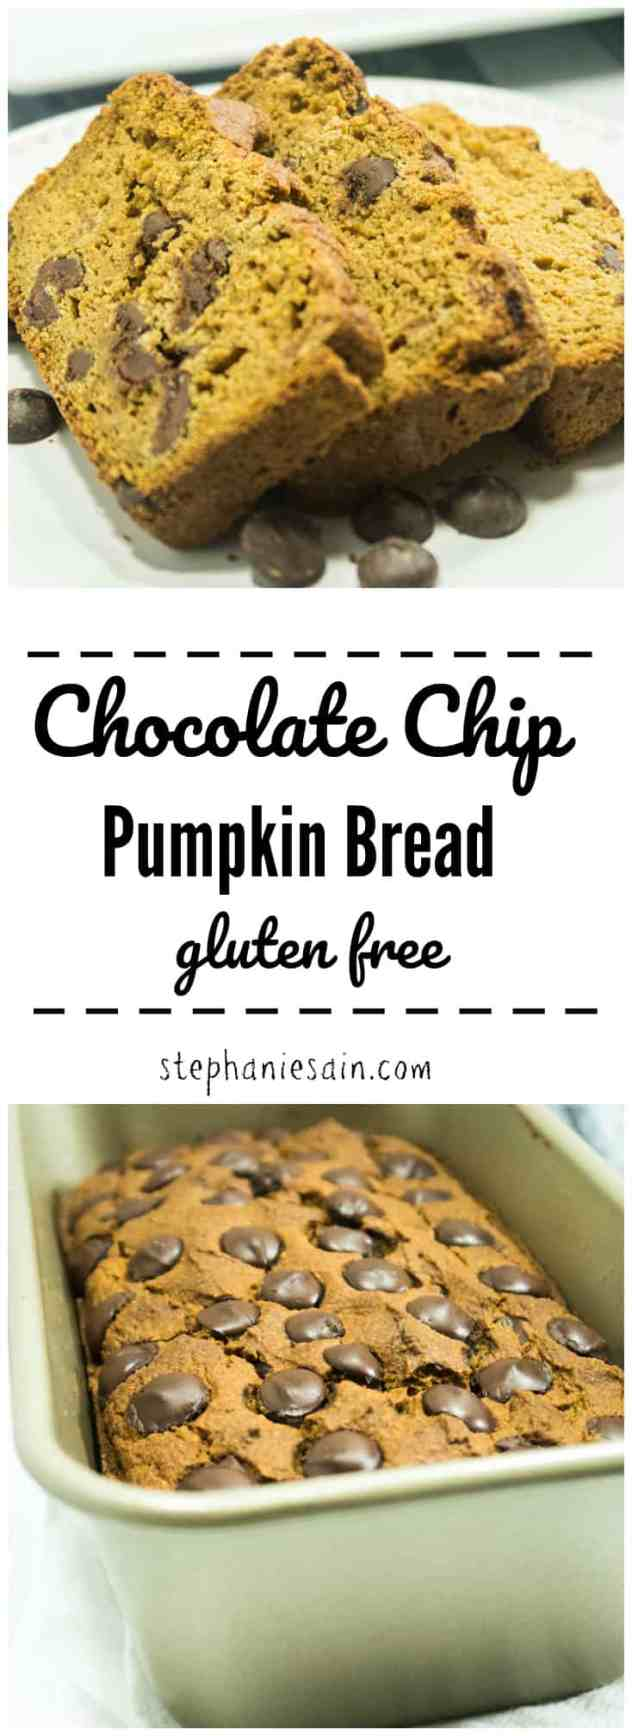 This Chocolate Chip Pumpkin Bread is Super moist, loaded with dark chocolate chips, & pumpkin spices. Perfect for a quick breakfast or snack. Kid friendly, no added refined sugars, & gluten free.